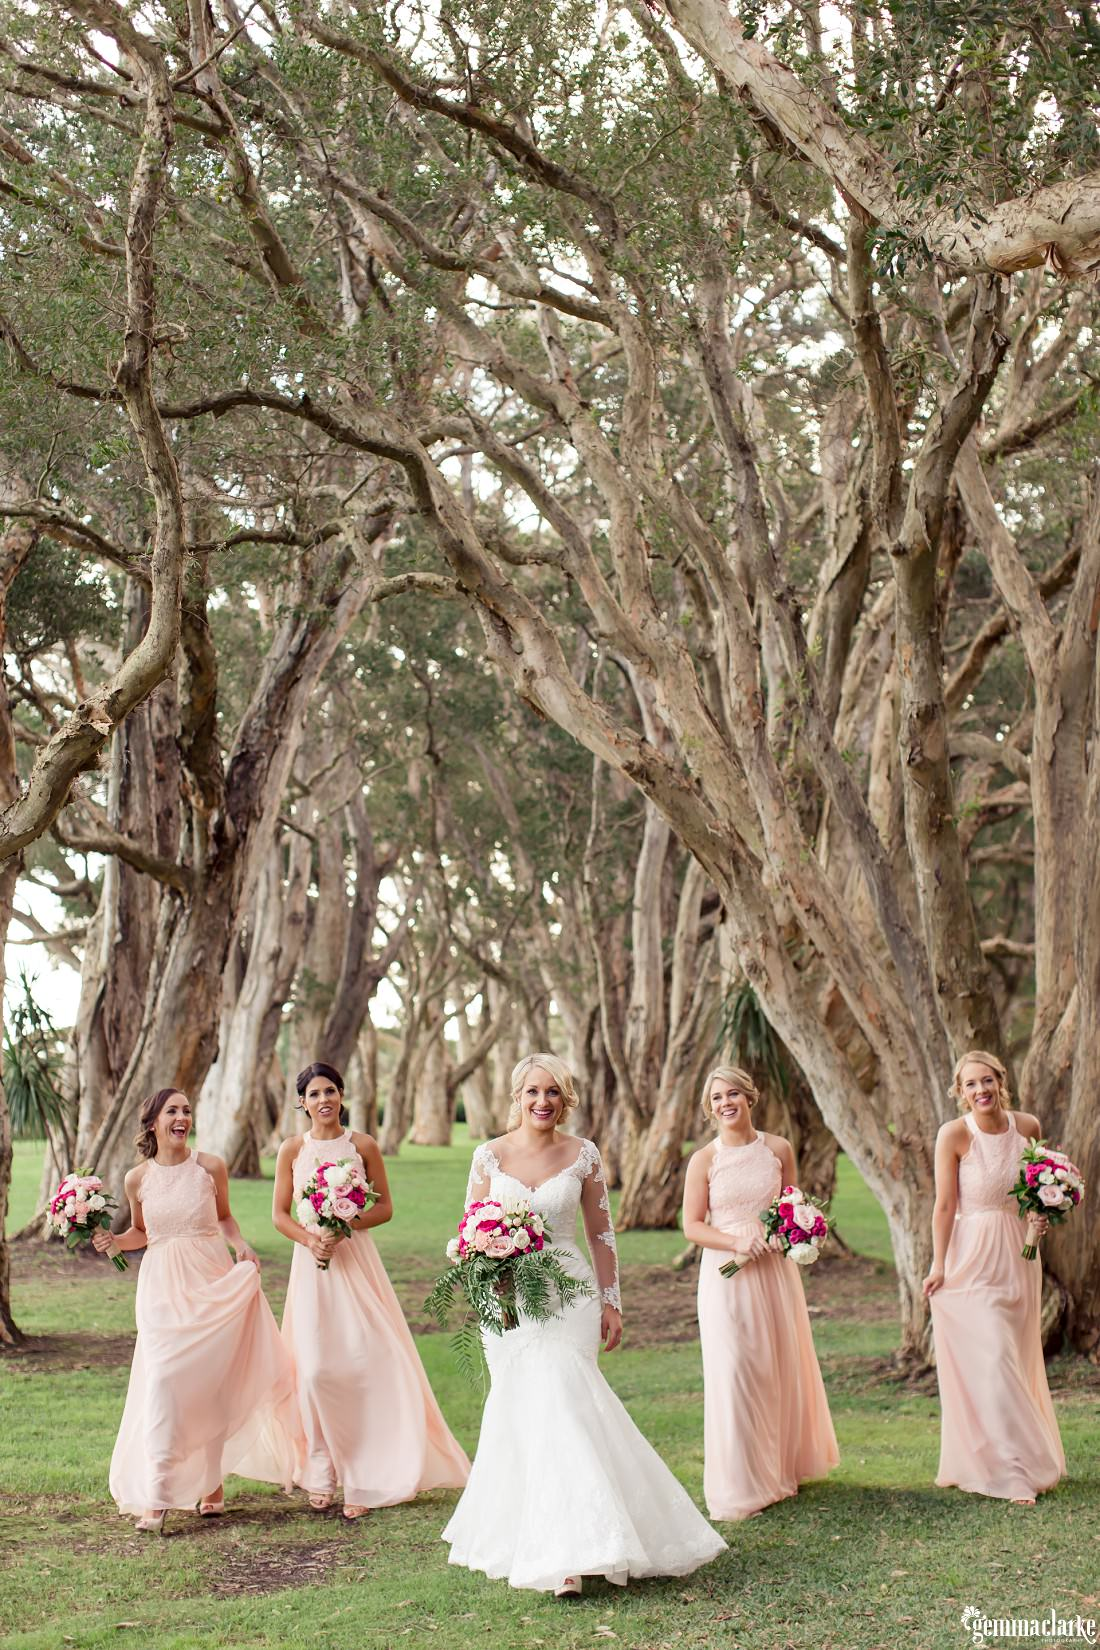 A bride and her bridesmaids walking amongst the trees - Centennial Park Wedding